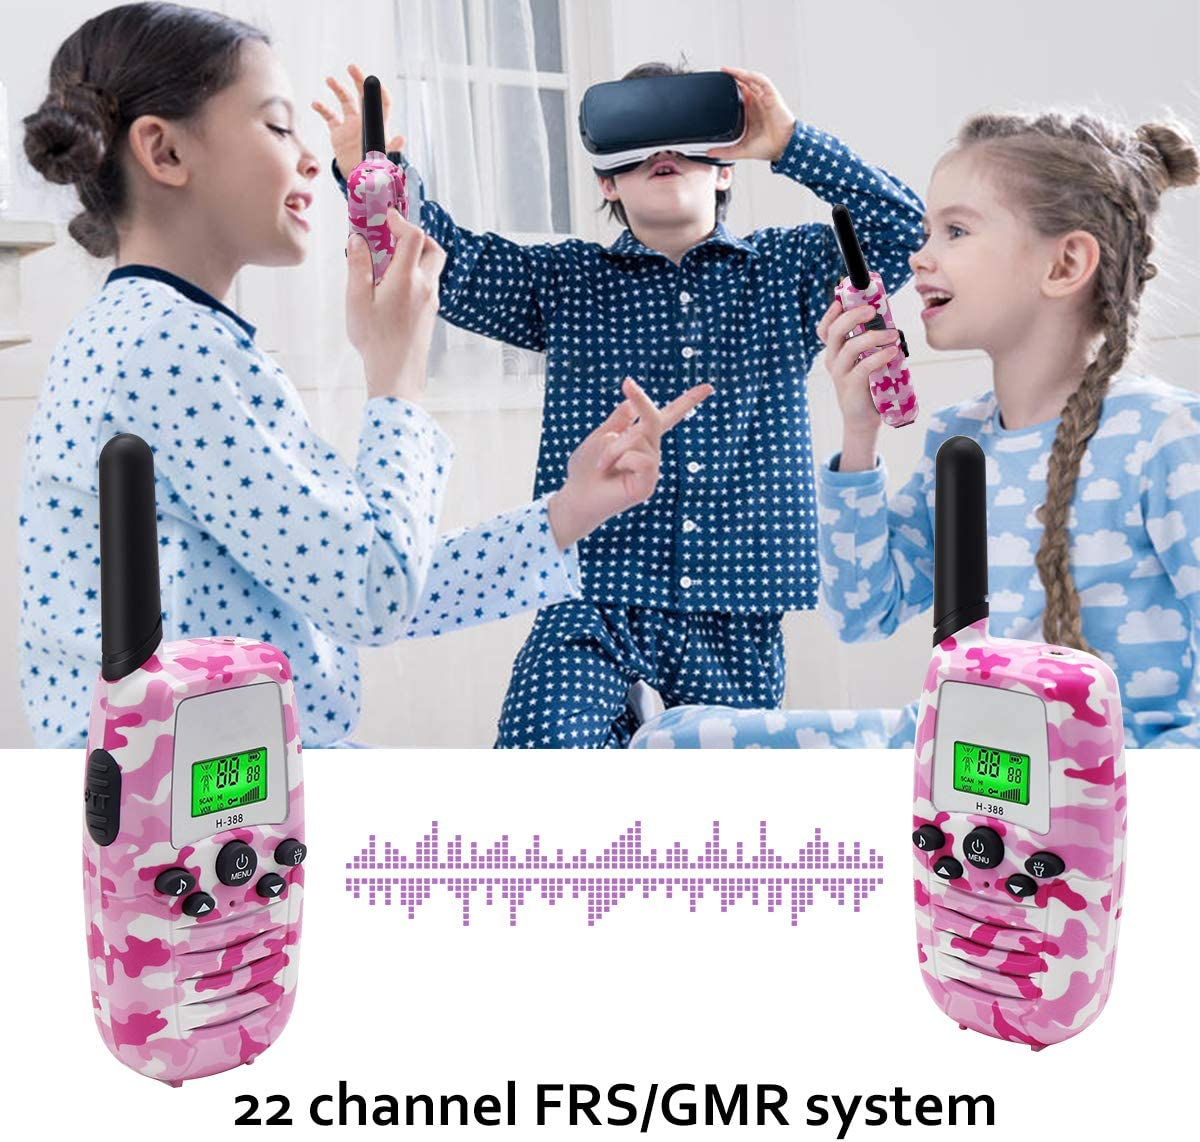 1 Pair 3 Mile Range Long 22 Channel with Flashlight Outdoor Camping /& Hiking Gear Christmas Birthday Gifts Toys for 3-12 Year Old Boys Girls Pink Byserten Walkie Talkies for Kids H-388